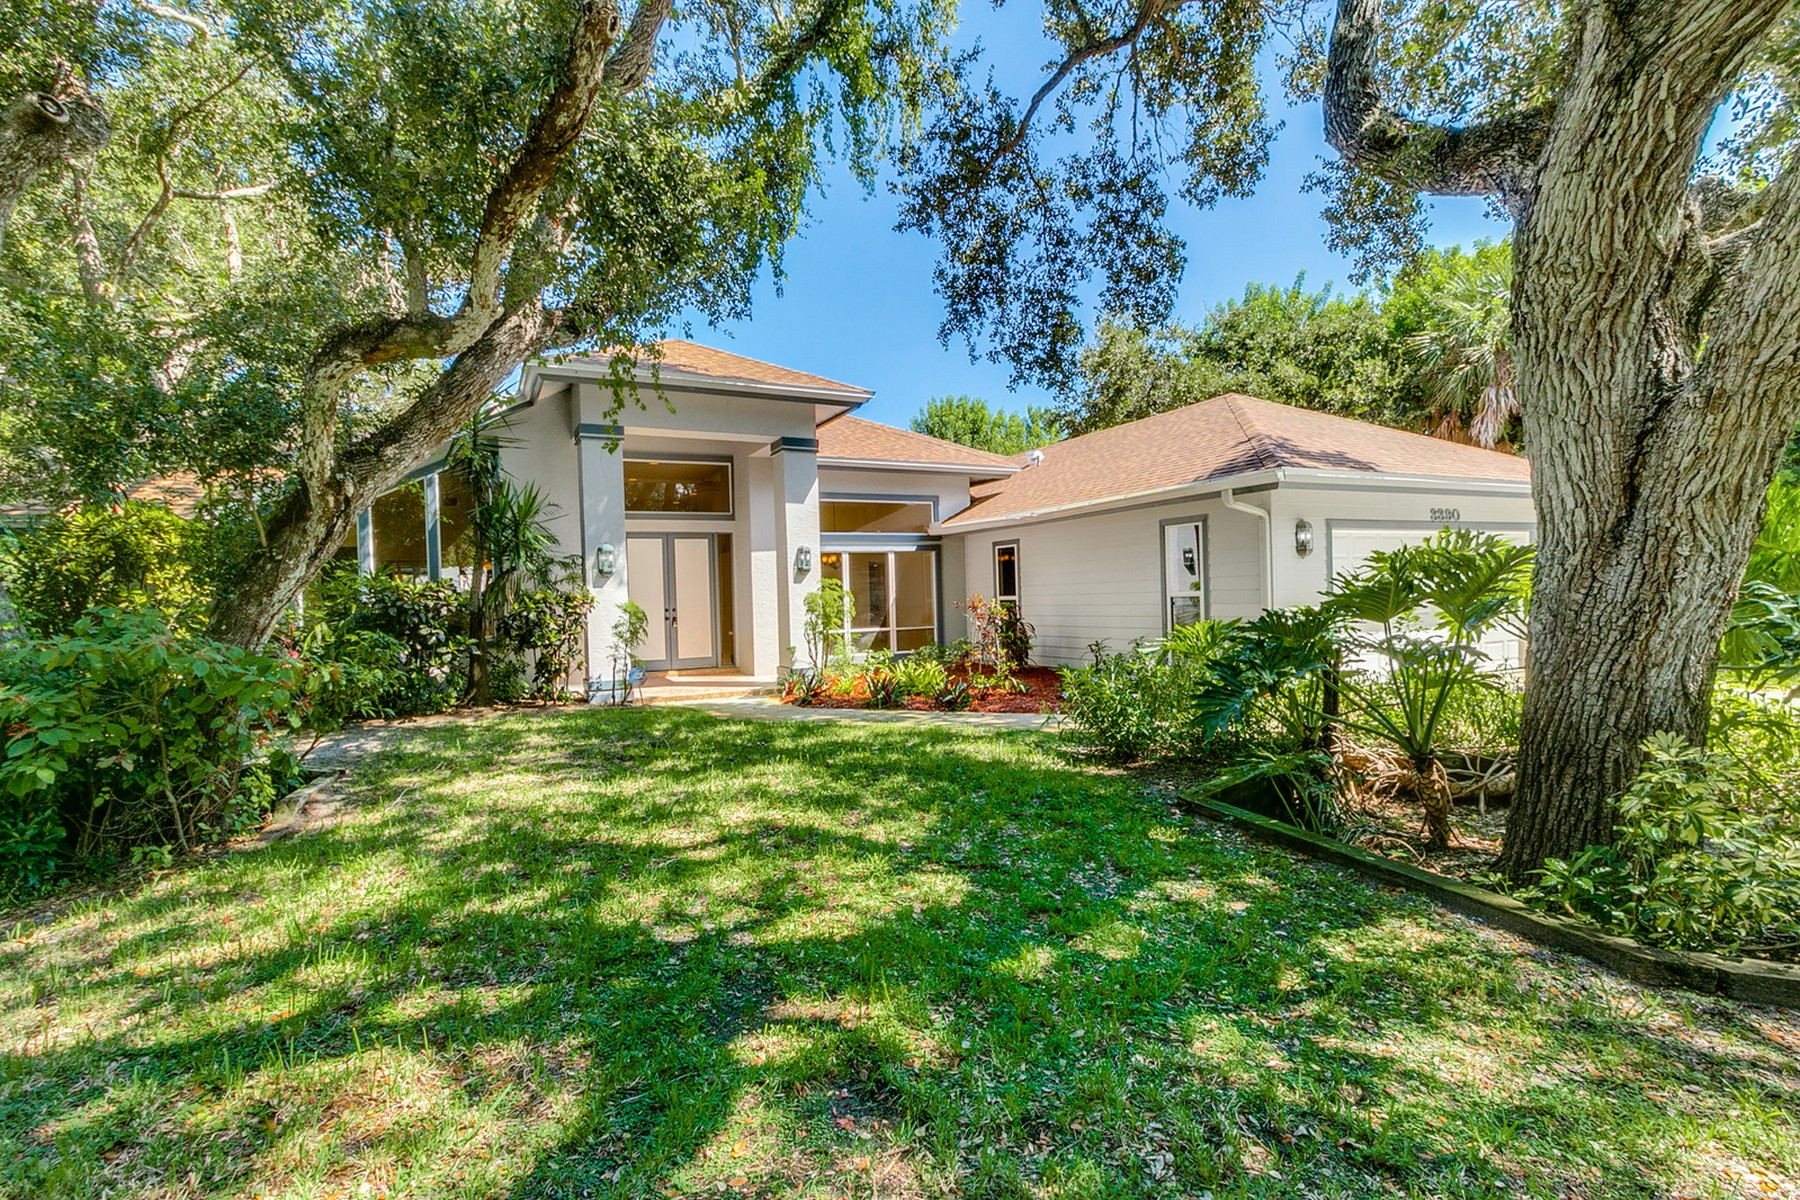 Beachside Home on Over One Half Acre! 3390 Mariners Way Vero Beach, Florida 32963 Estados Unidos